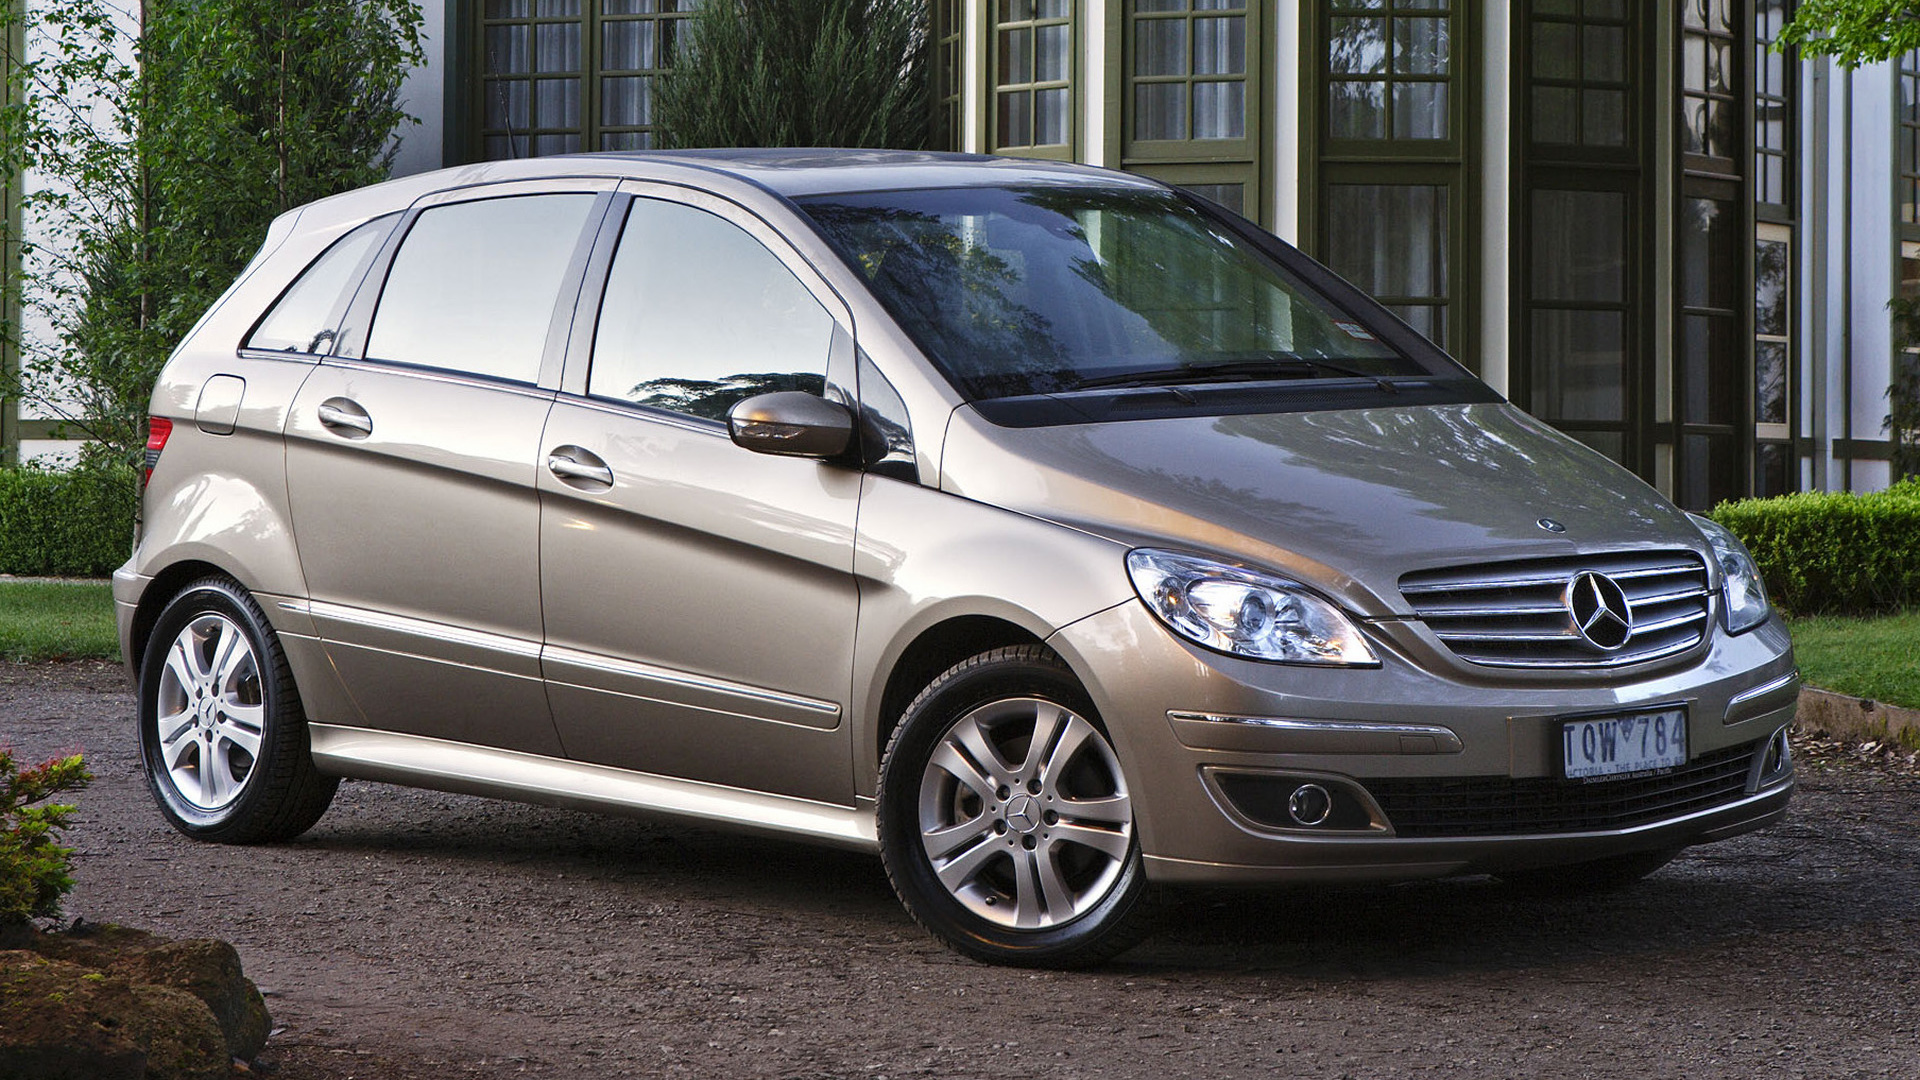 Mercedes benz b class 2005 au wallpapers and hd images for Mercedes benz b class 2005